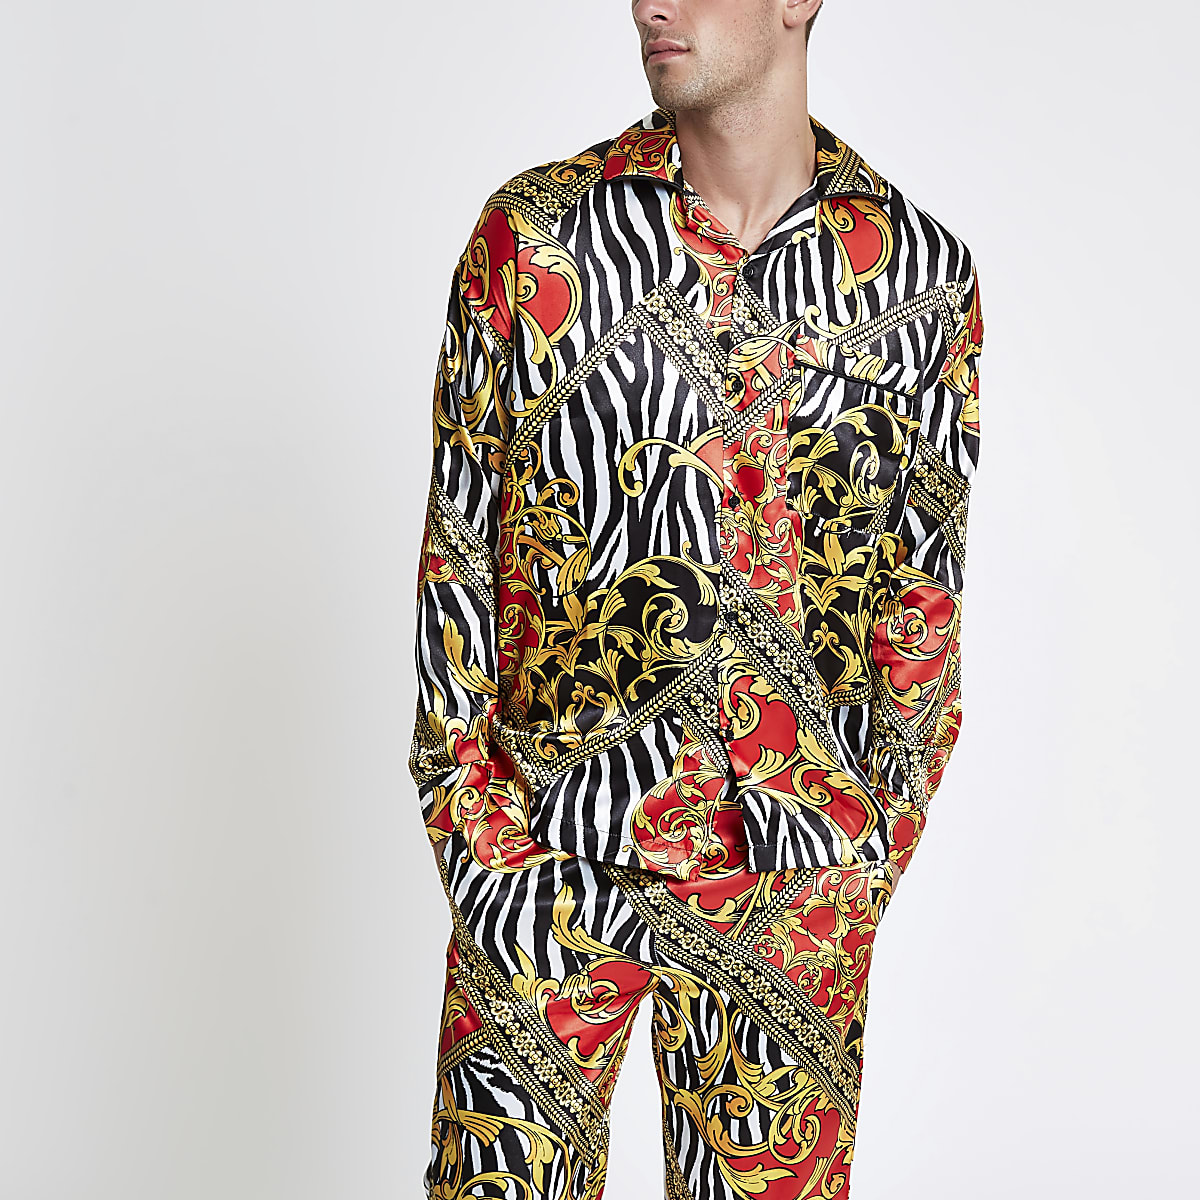 Jaded London yellow zebra print pyjama shirt